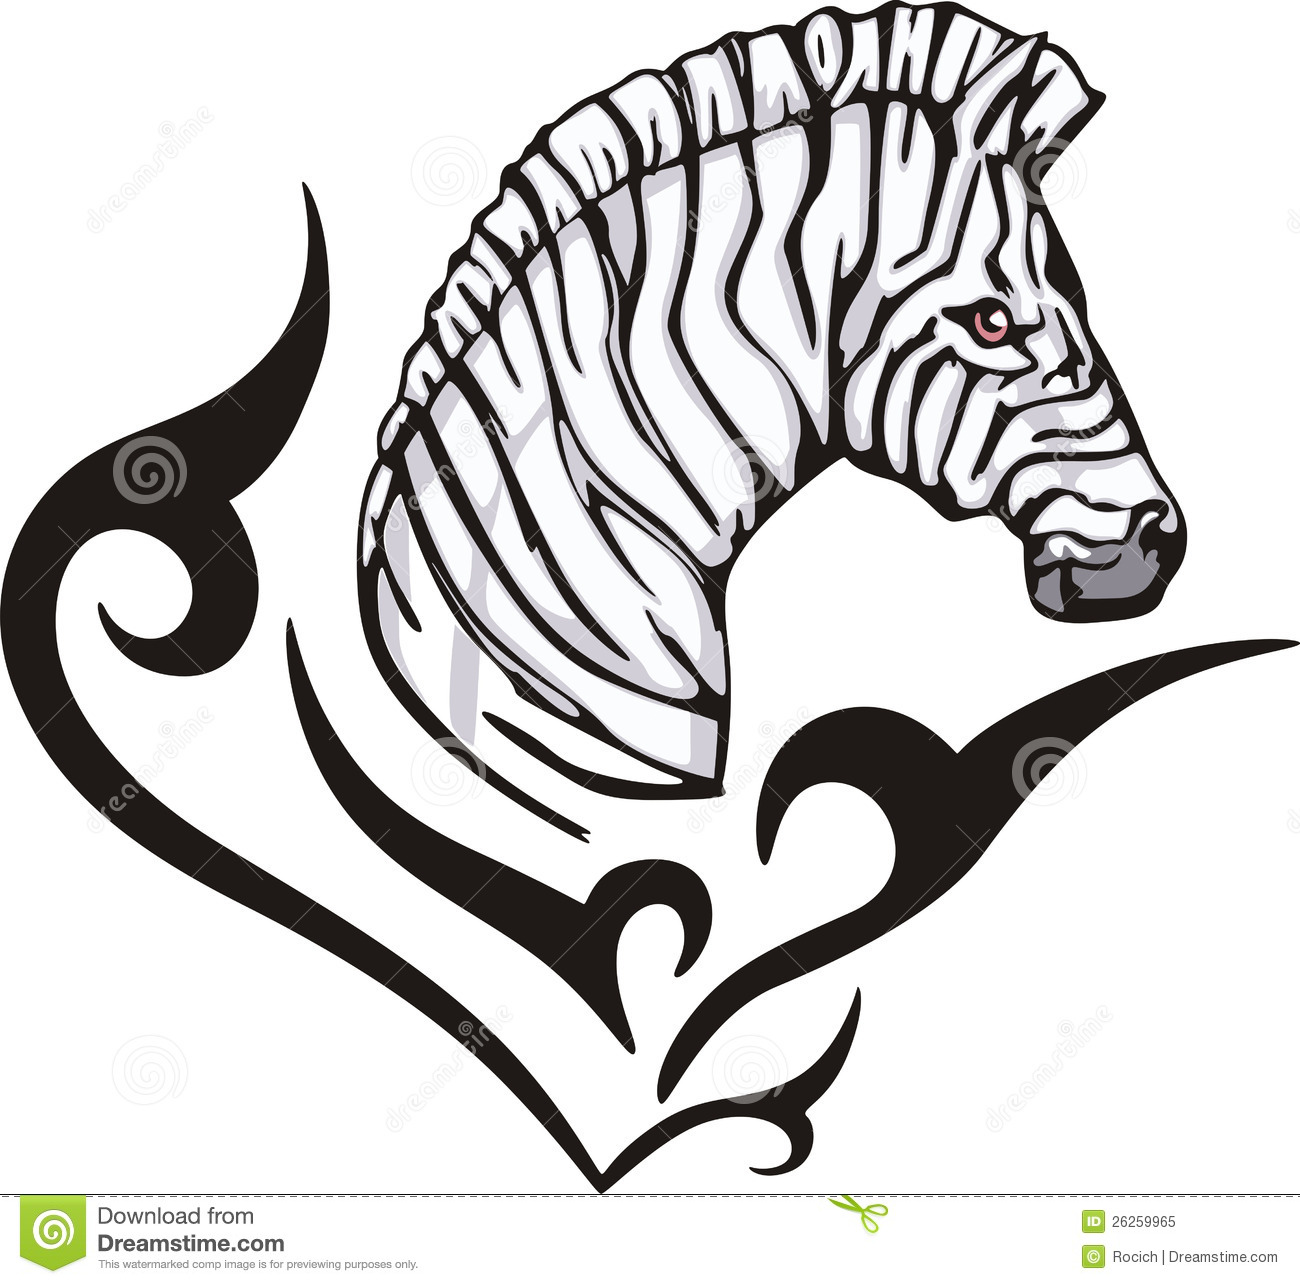 zebra tattoo royalty free stock photo image 26259965. Black Bedroom Furniture Sets. Home Design Ideas